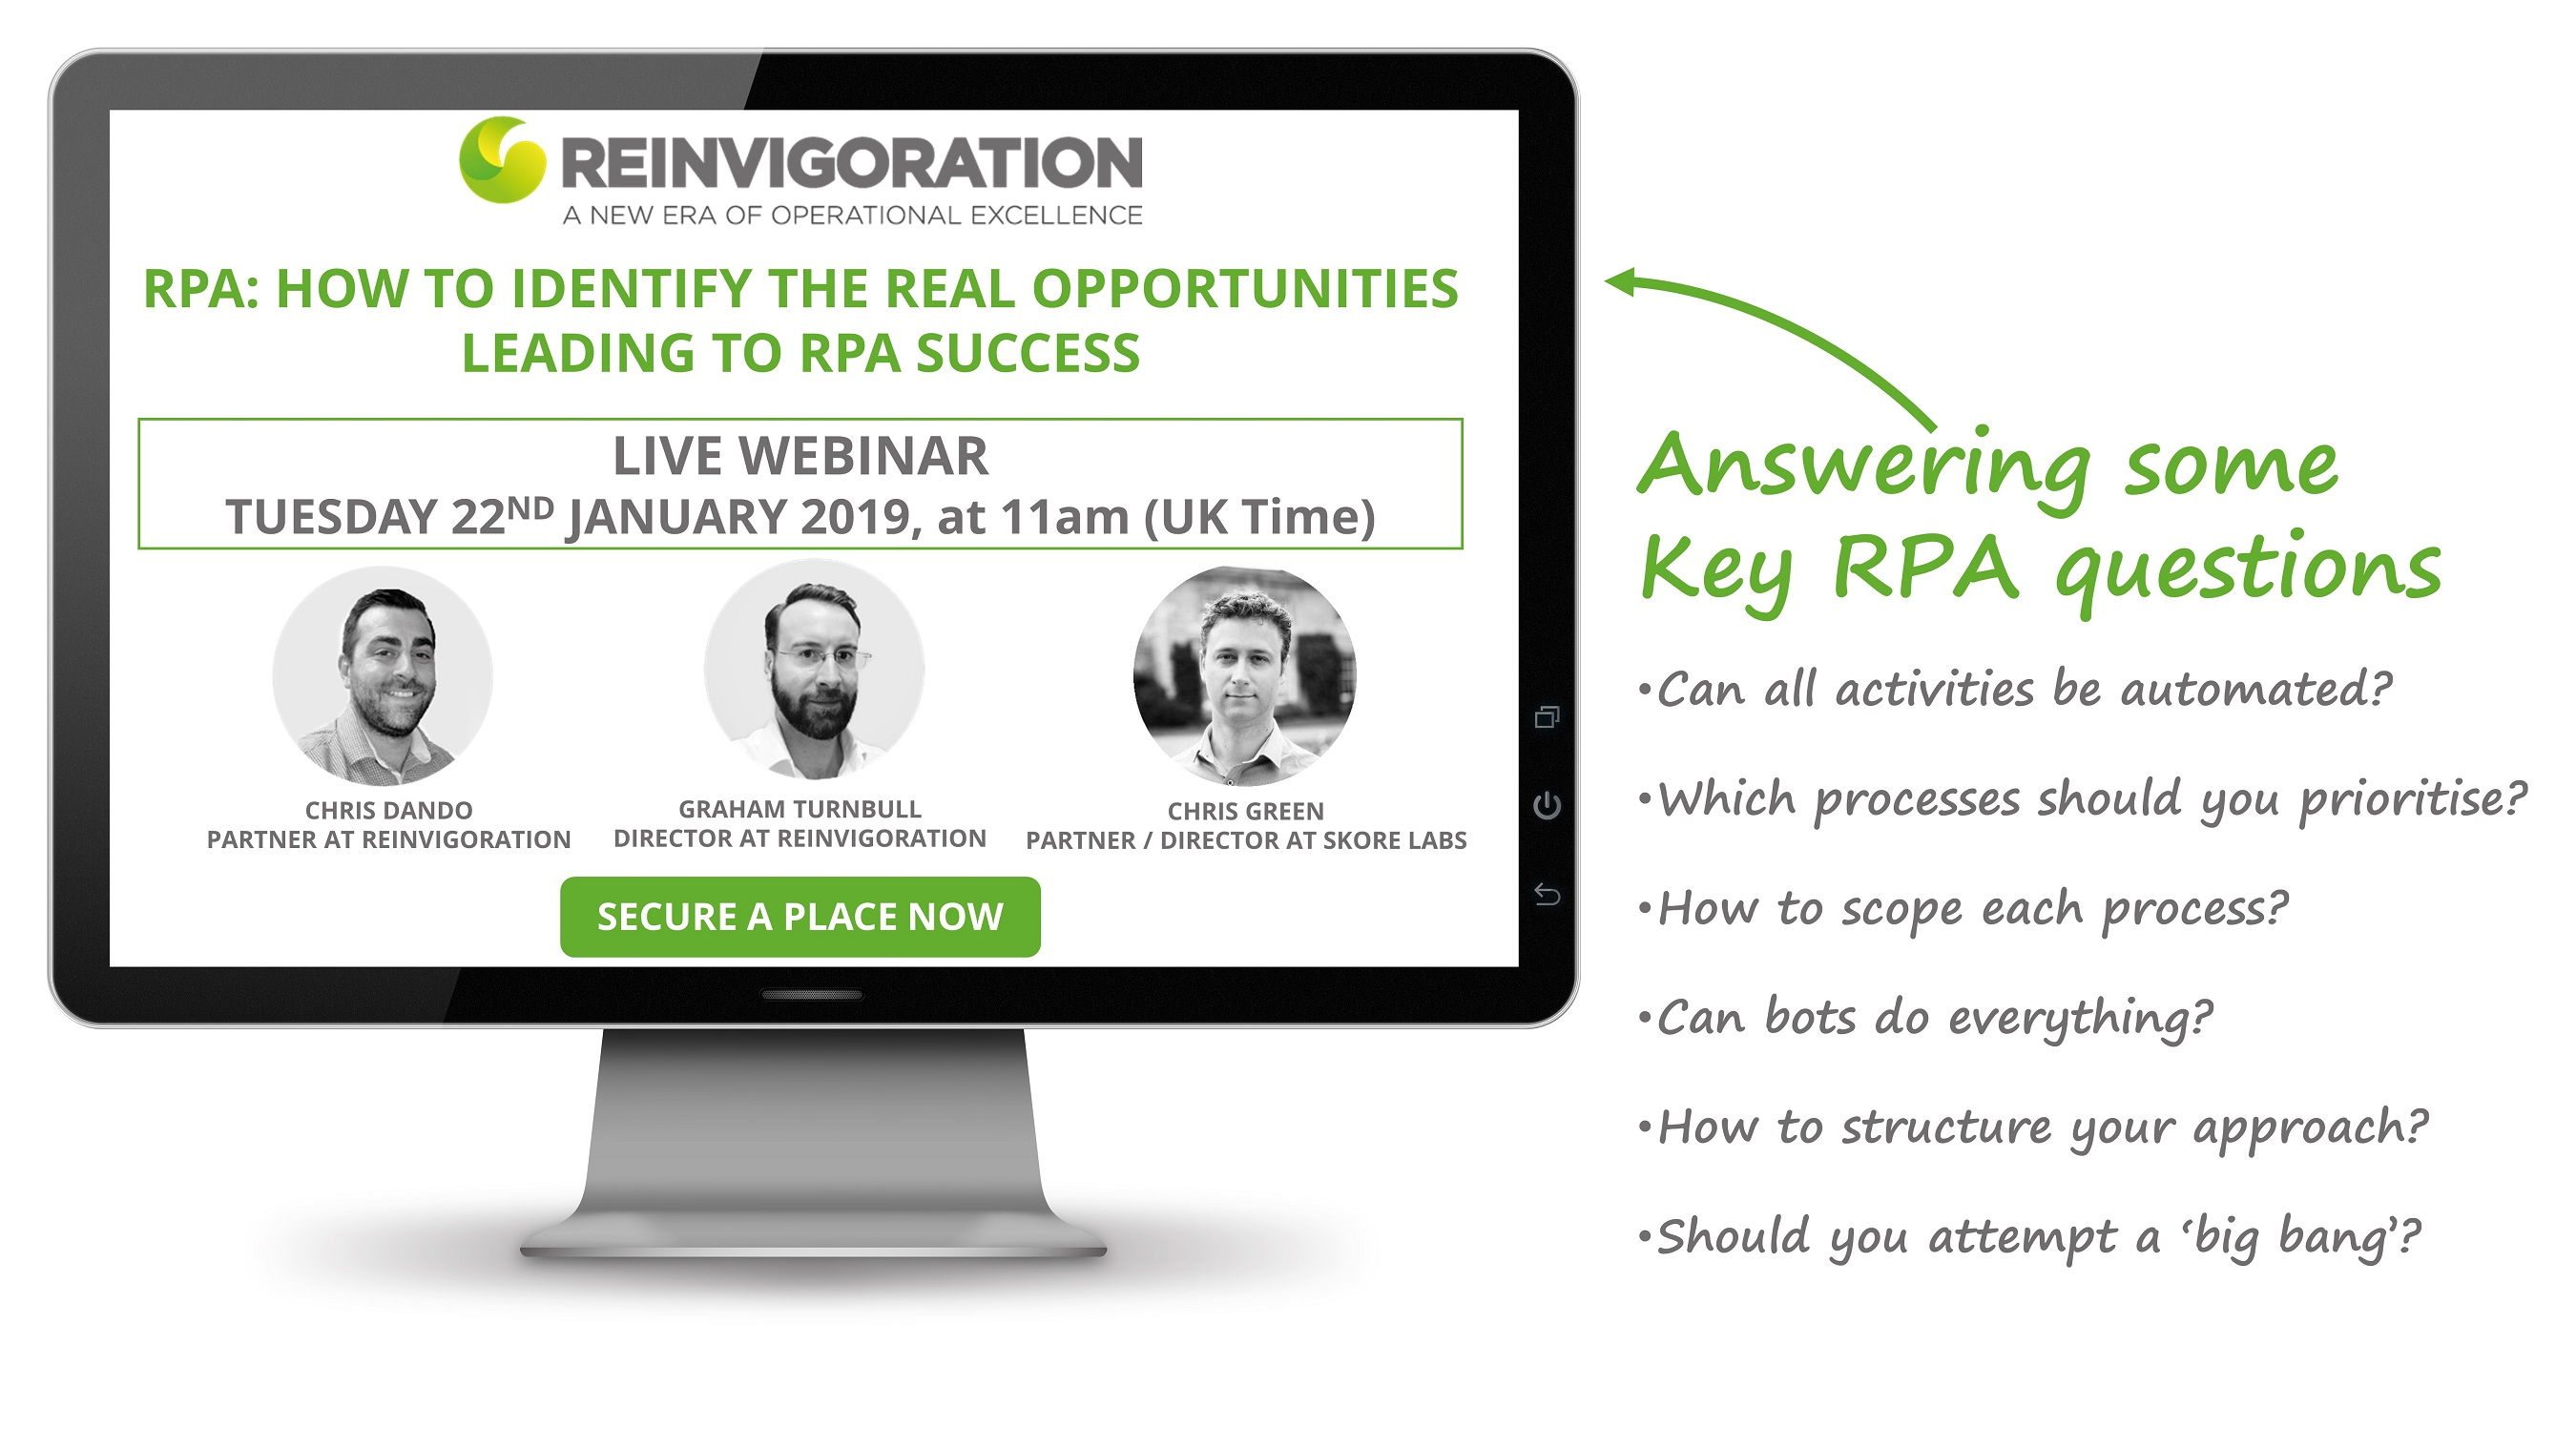 Reinvigoration RPA Webinar Jan 2019